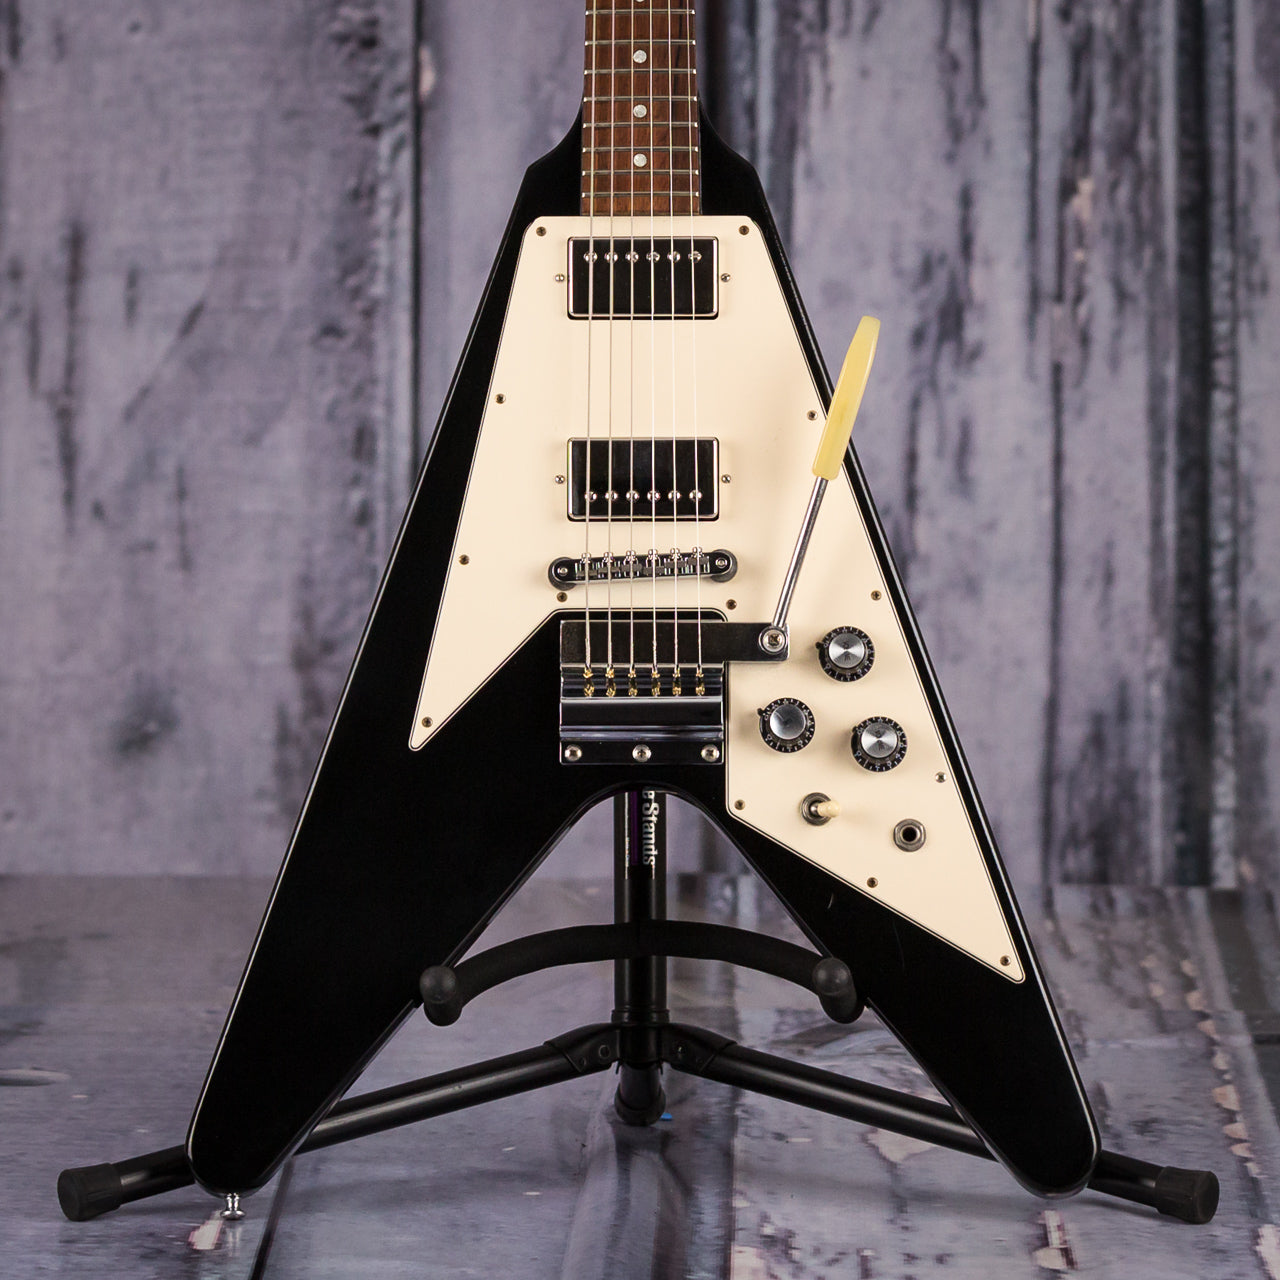 used gibson custom shop historic 1967 flying v 2001 black for sale replay guitar. Black Bedroom Furniture Sets. Home Design Ideas